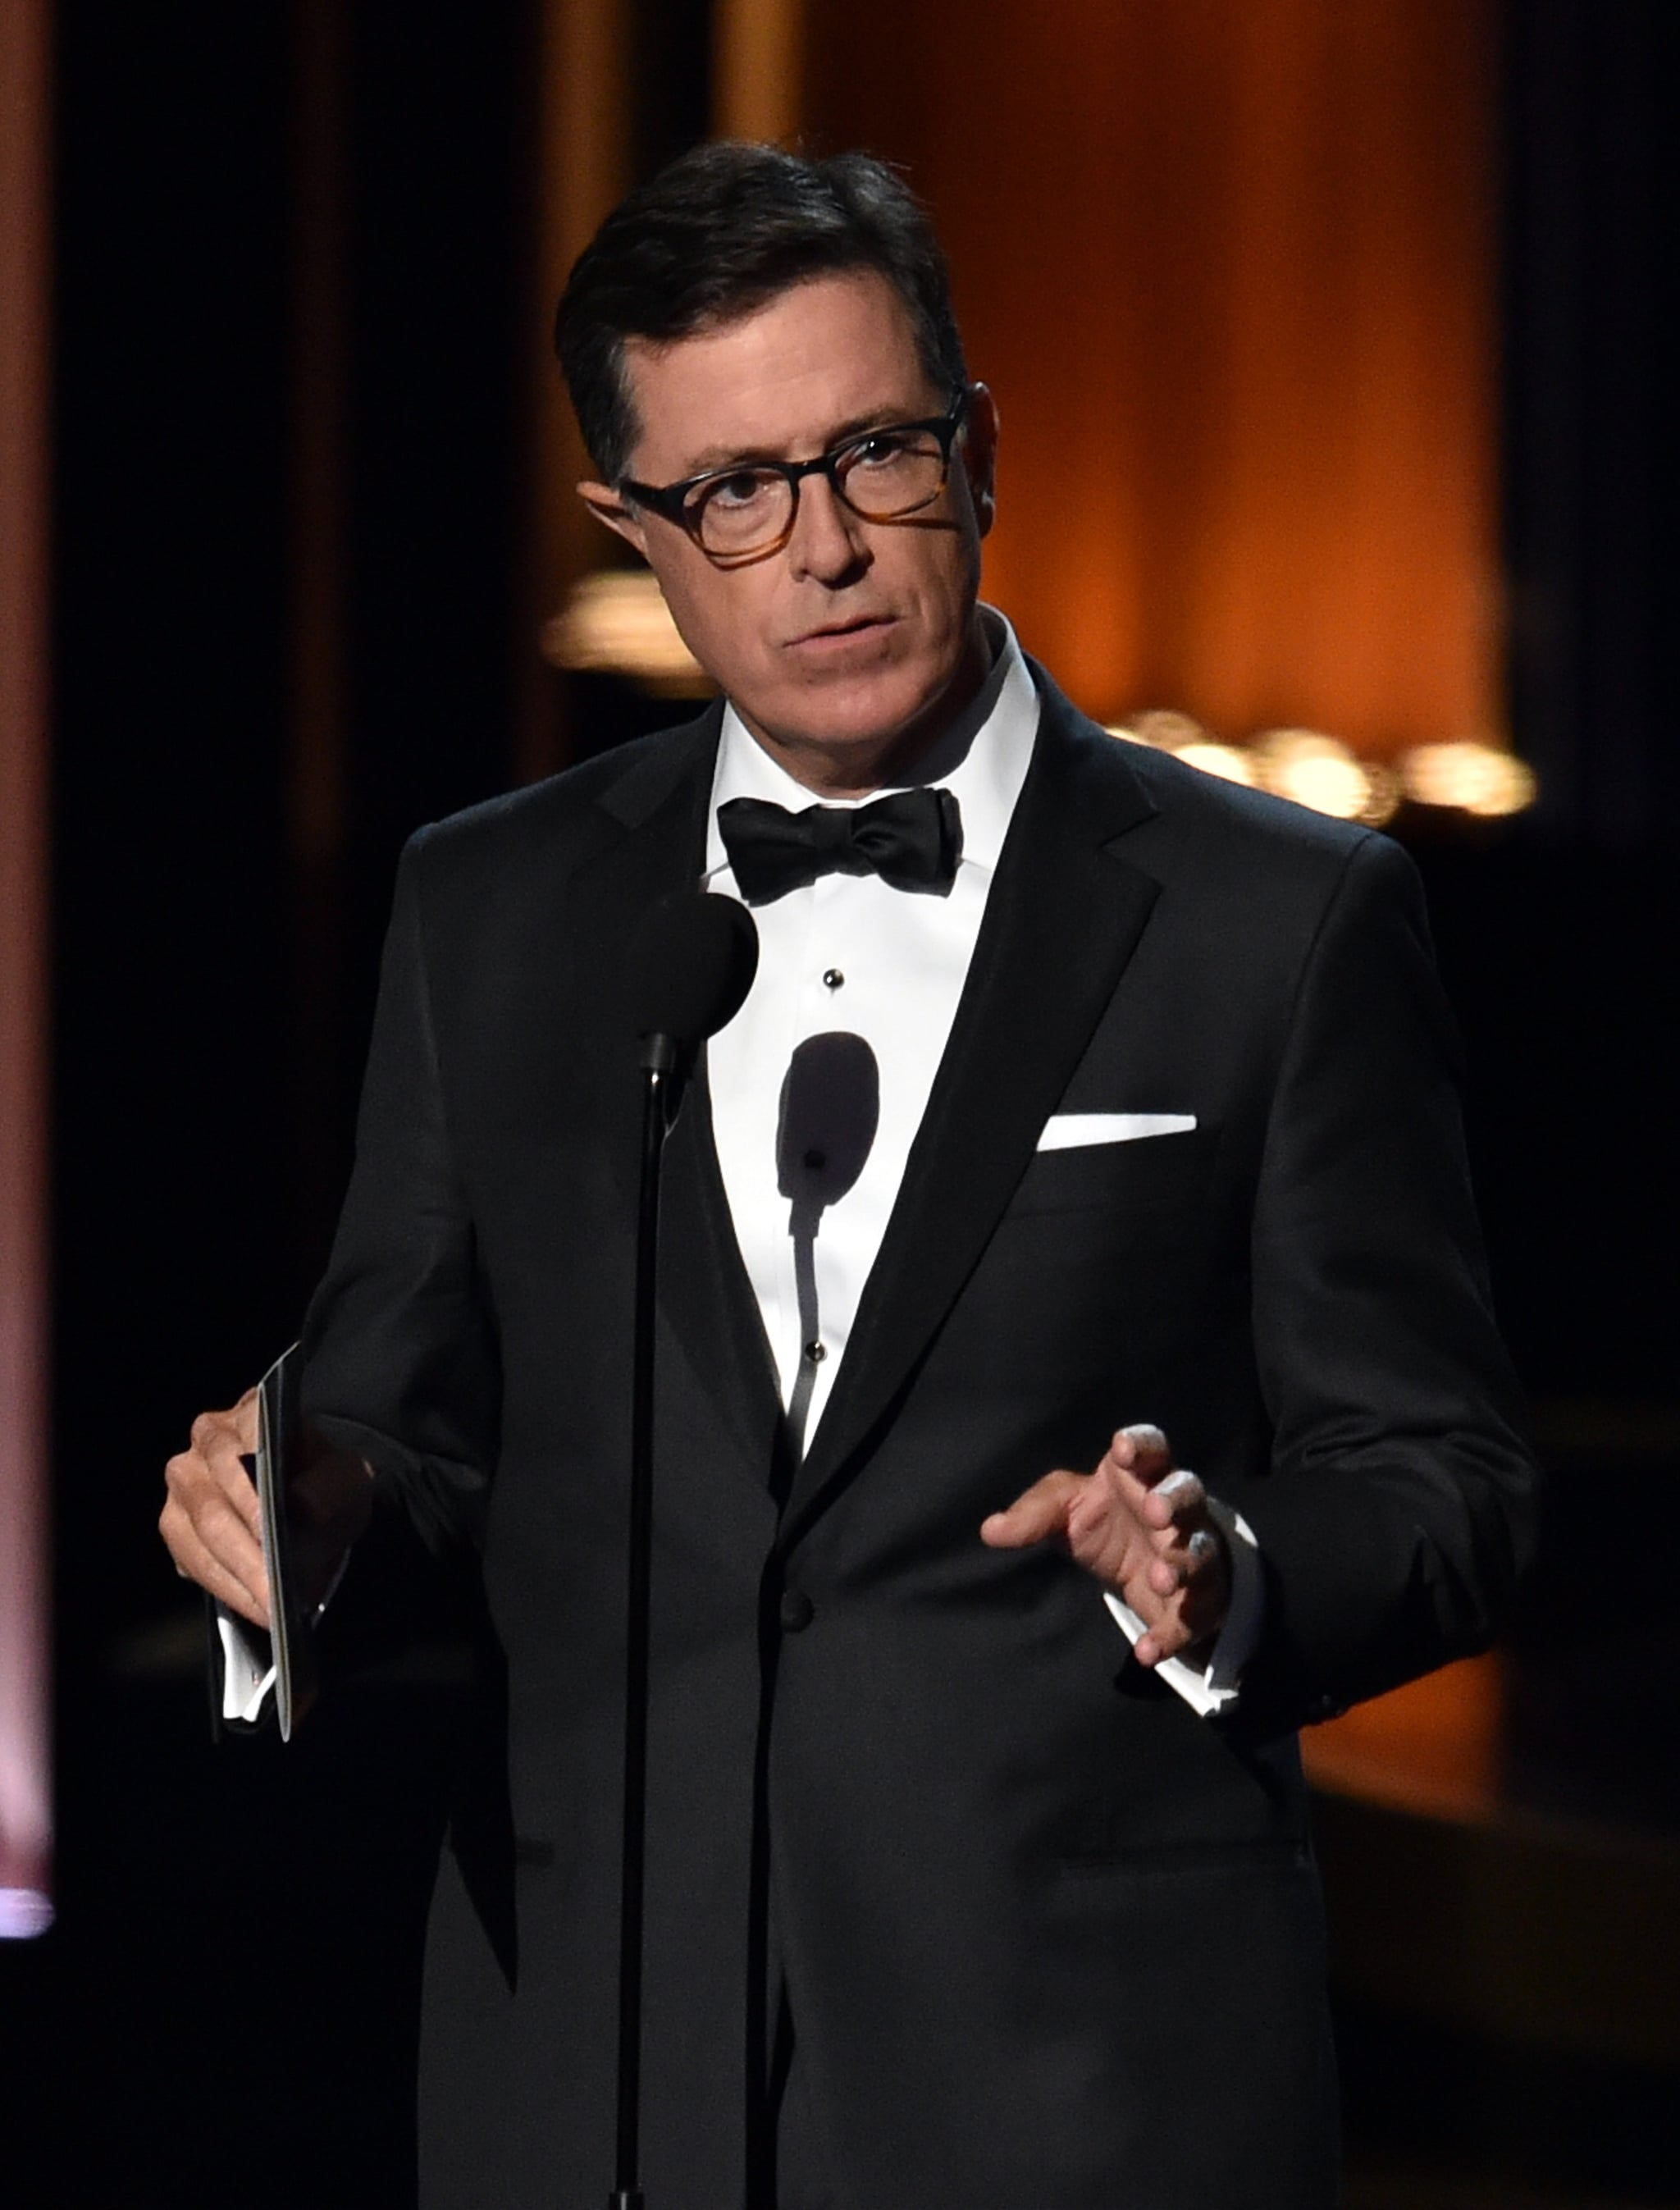 Stephen Colbert introduced the world to his imaginary friend.